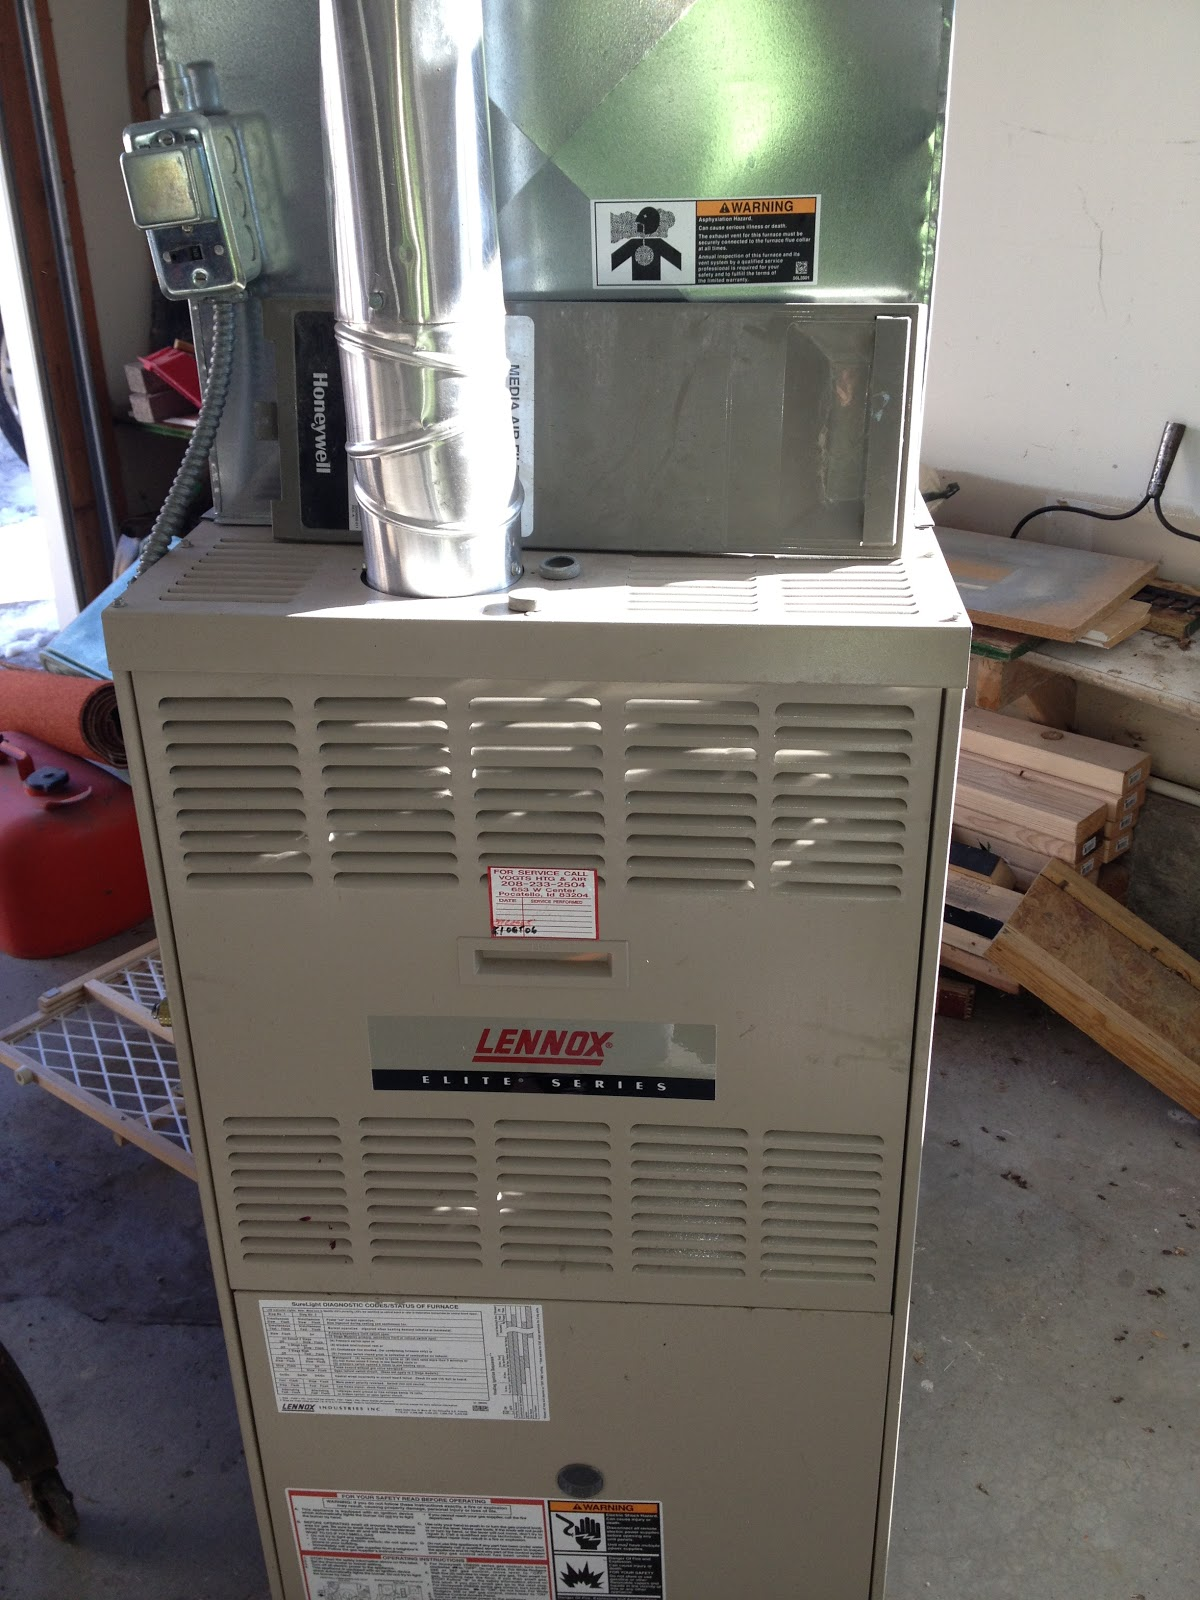 lennox elite series furnace. newer furnace works great - we are renovating an older home in the university area and replaced heating/air conditioning system, plumbing, lennox elite series e